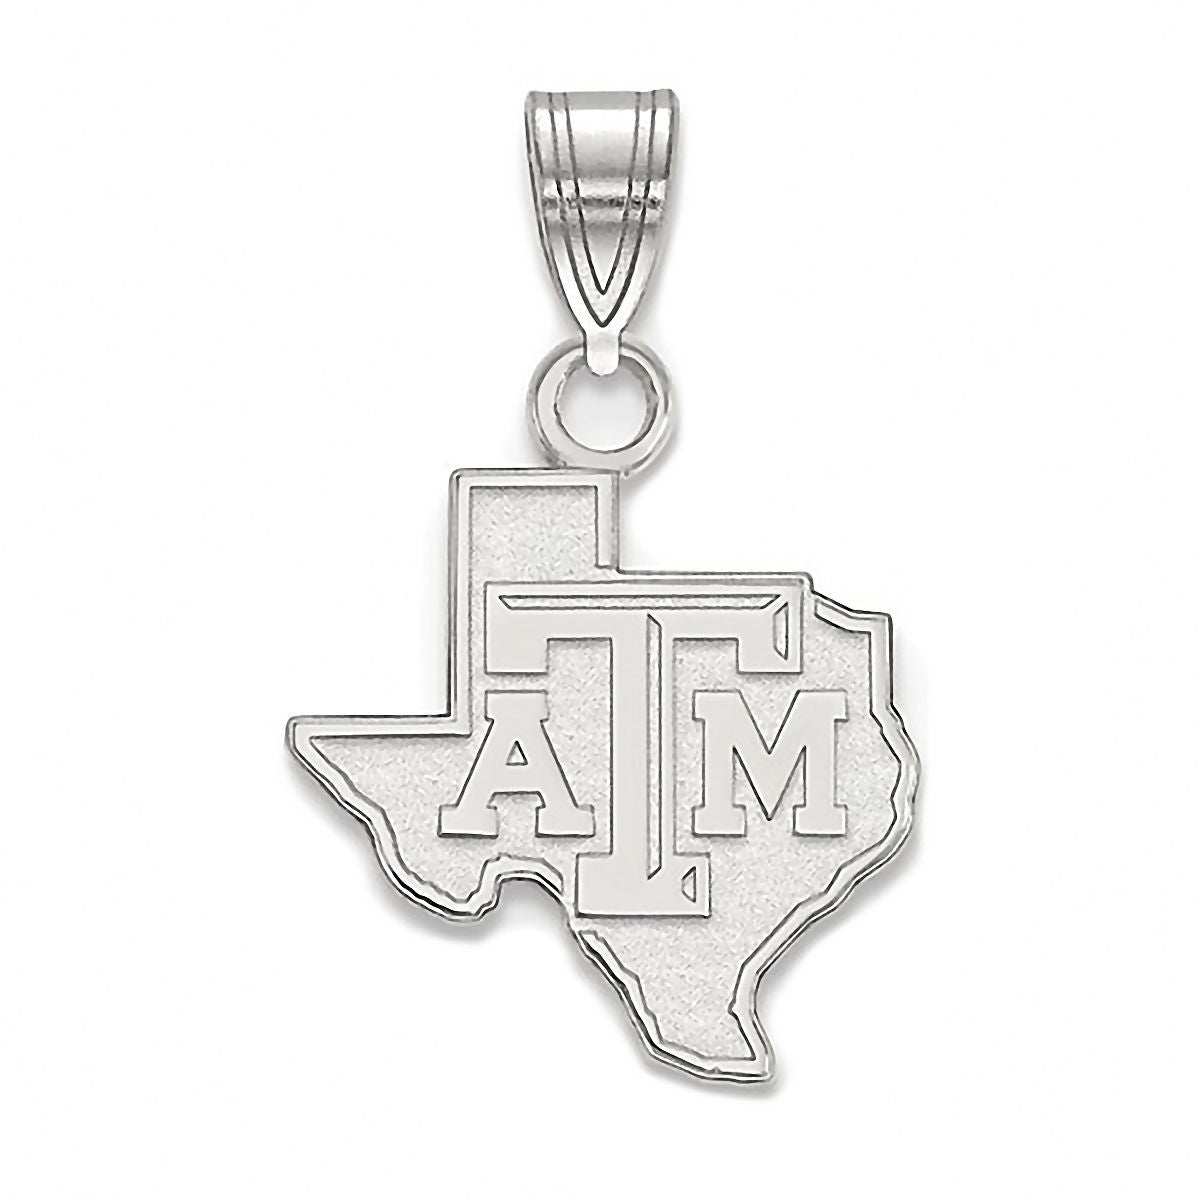 Texas am university sterling silver small texas pendant officially texas am university sterling silver small texas pendant officially licensed 1000jewels mozeypictures Choice Image